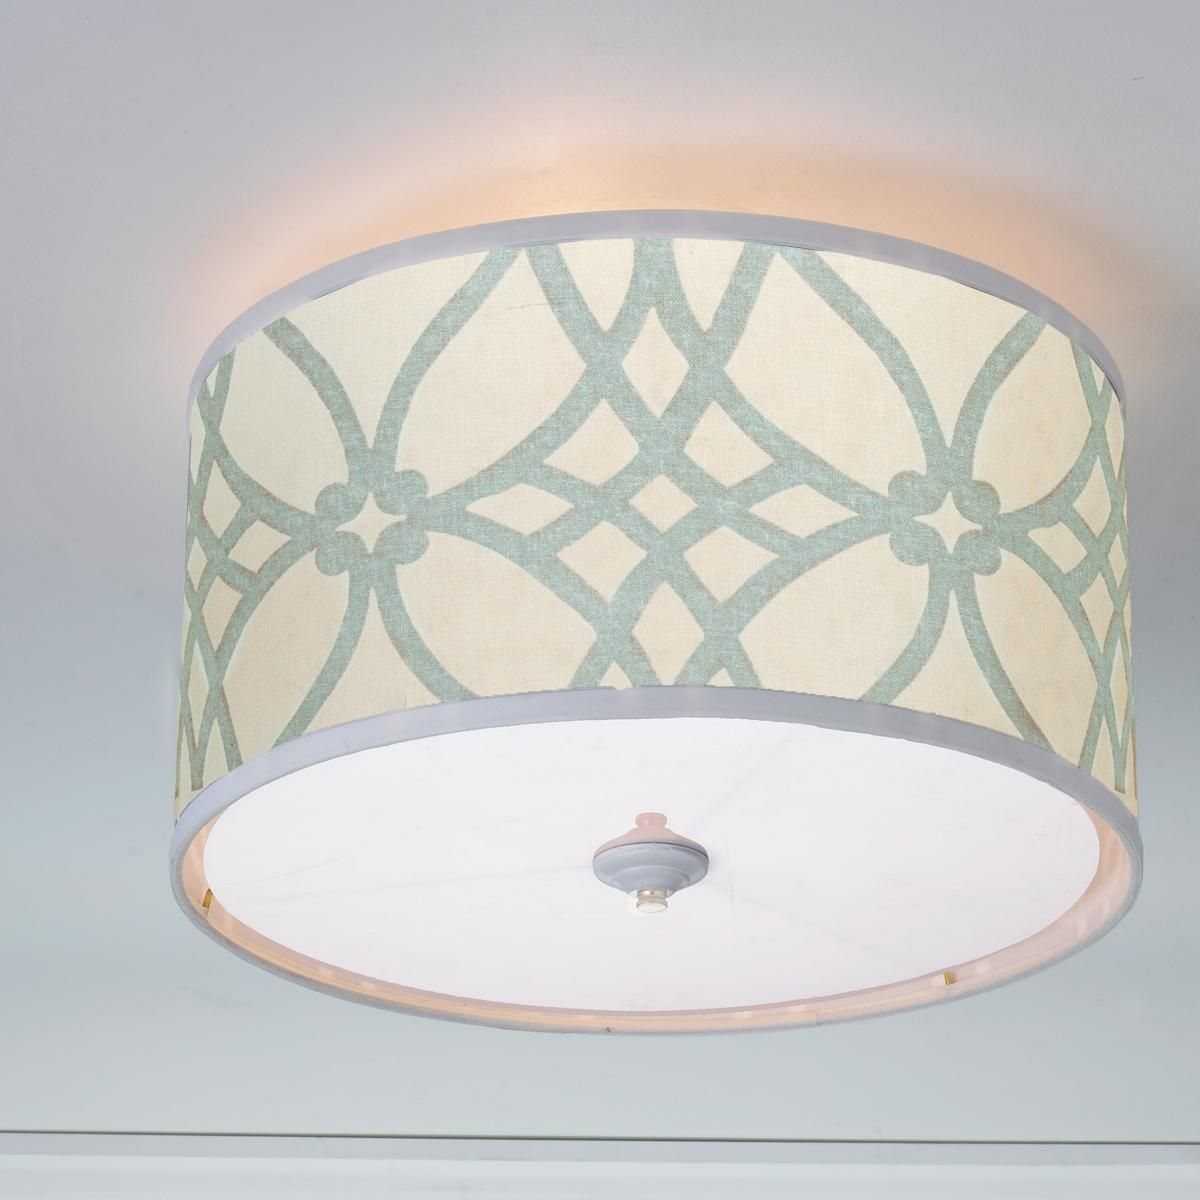 lighting for ceilings. i like this drum shade pattern trellis linen ceiling light 2 colors lighting for ceilings